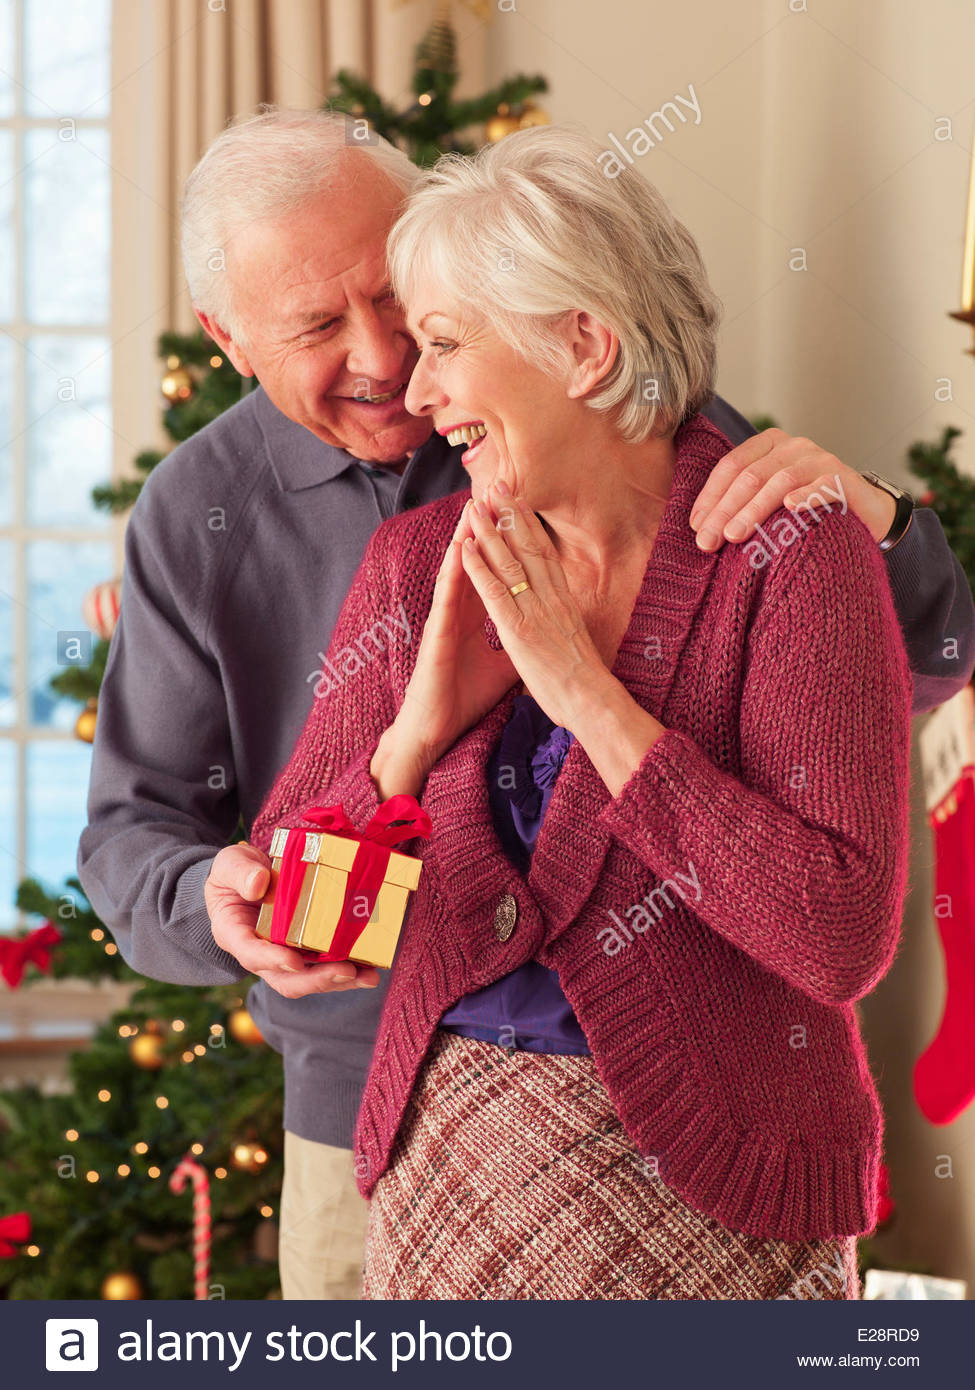 Man surprising woman with Christmas gift - Stock Image